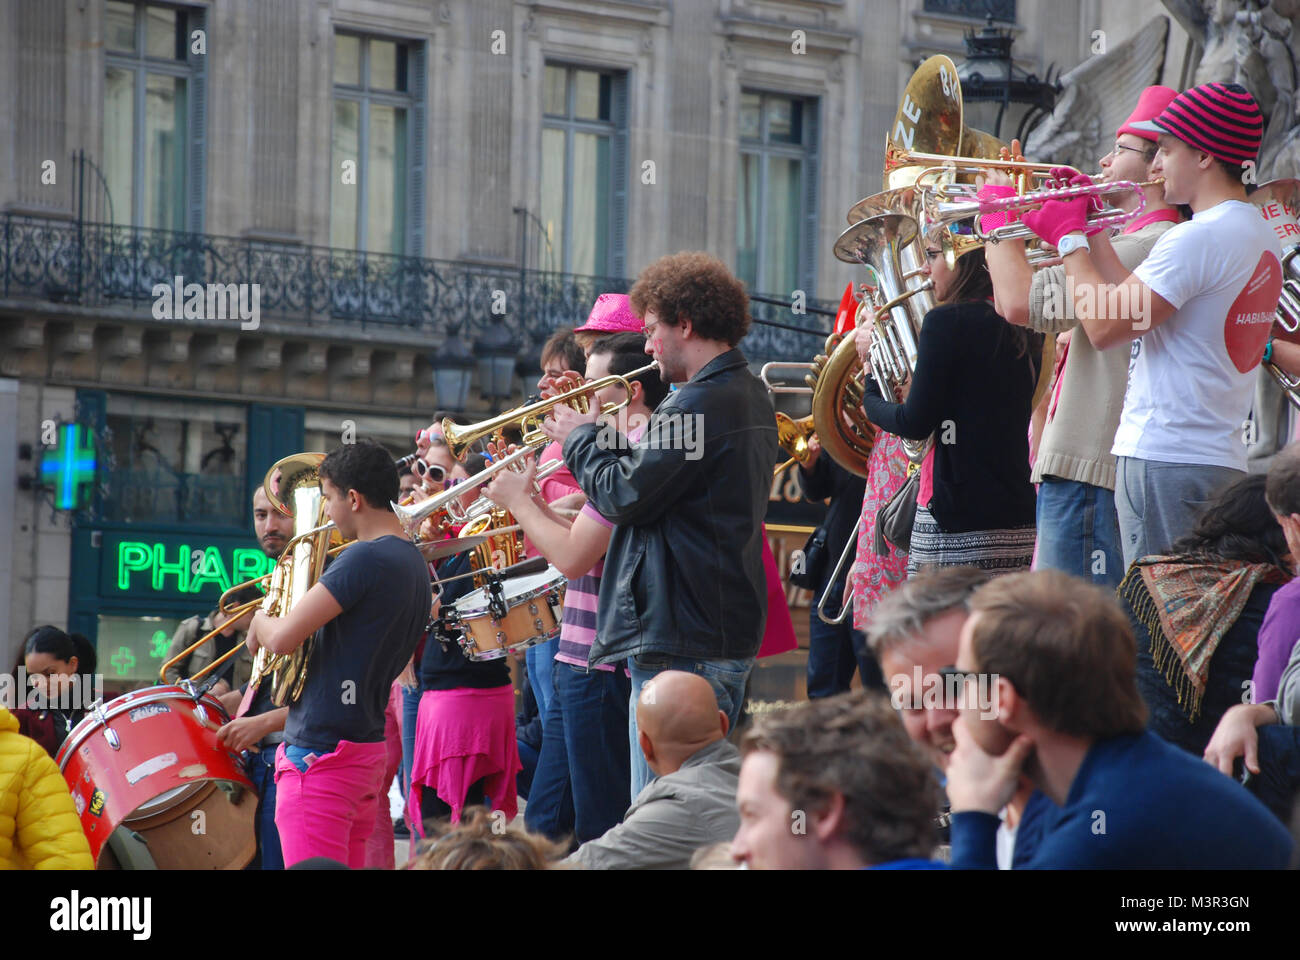 Street brass band performing in front of Palais Garnier (Opera House) in Paris, France - Stock Image